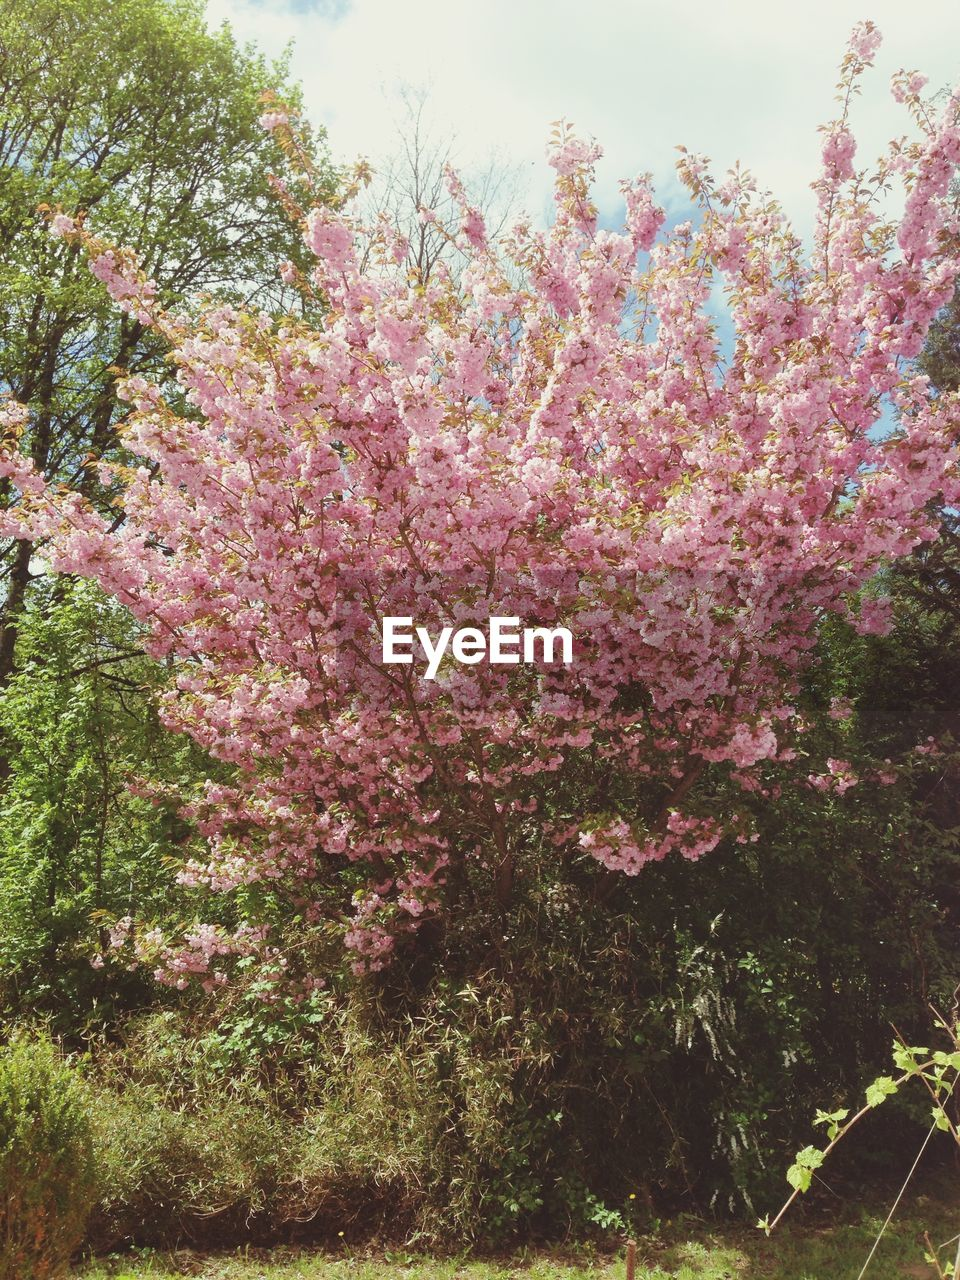 plant, flower, flowering plant, growth, beauty in nature, tree, pink color, fragility, freshness, nature, vulnerability, blossom, springtime, day, no people, branch, tranquility, outdoors, low angle view, park, cherry blossom, spring, cherry tree, lilac